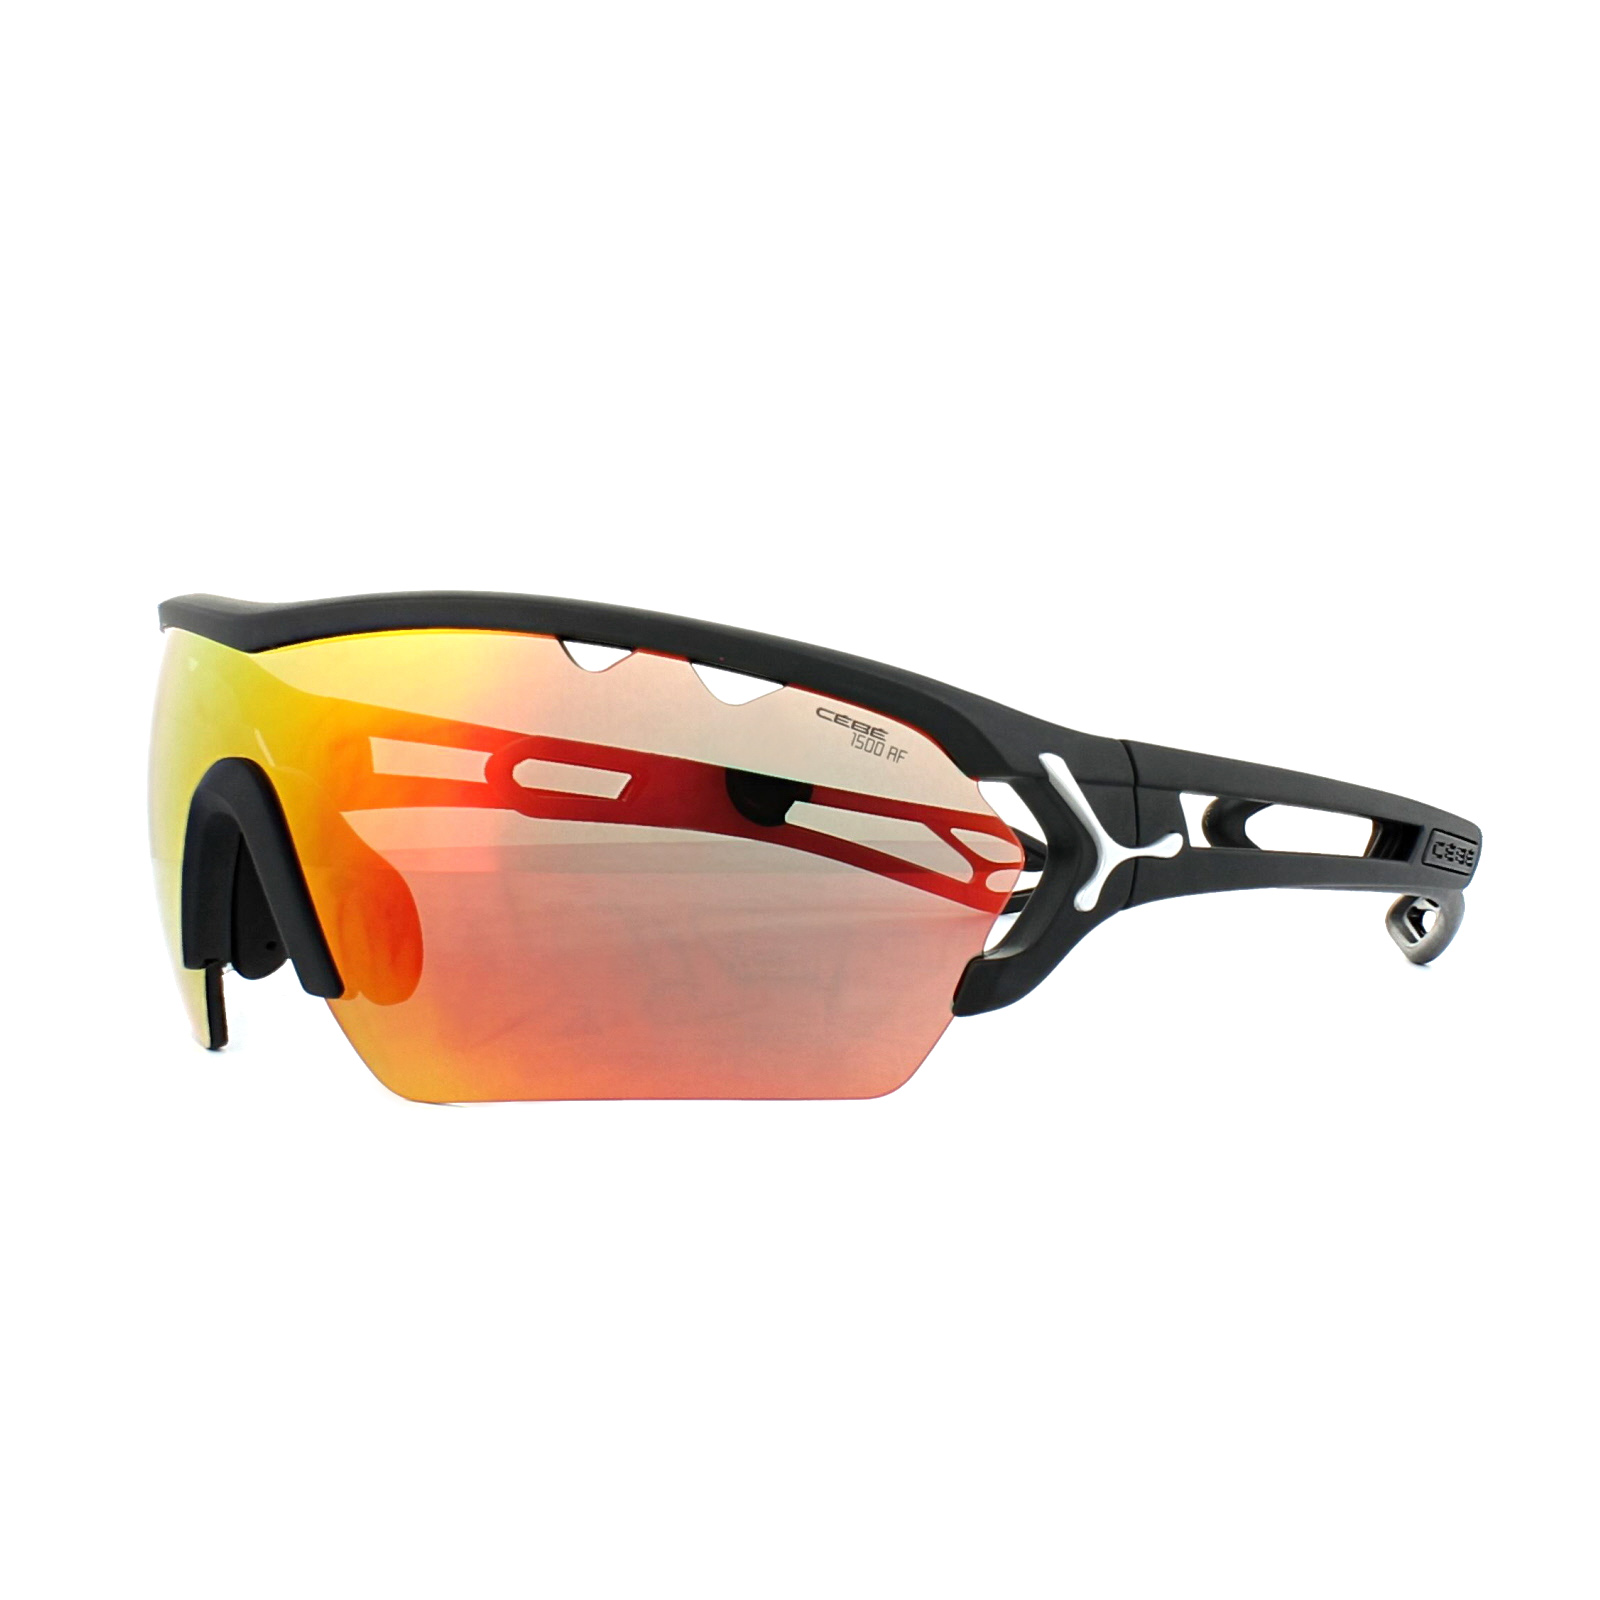 46cff81834 Cheap Cebe Sunglasses - Discounted Sunglasses